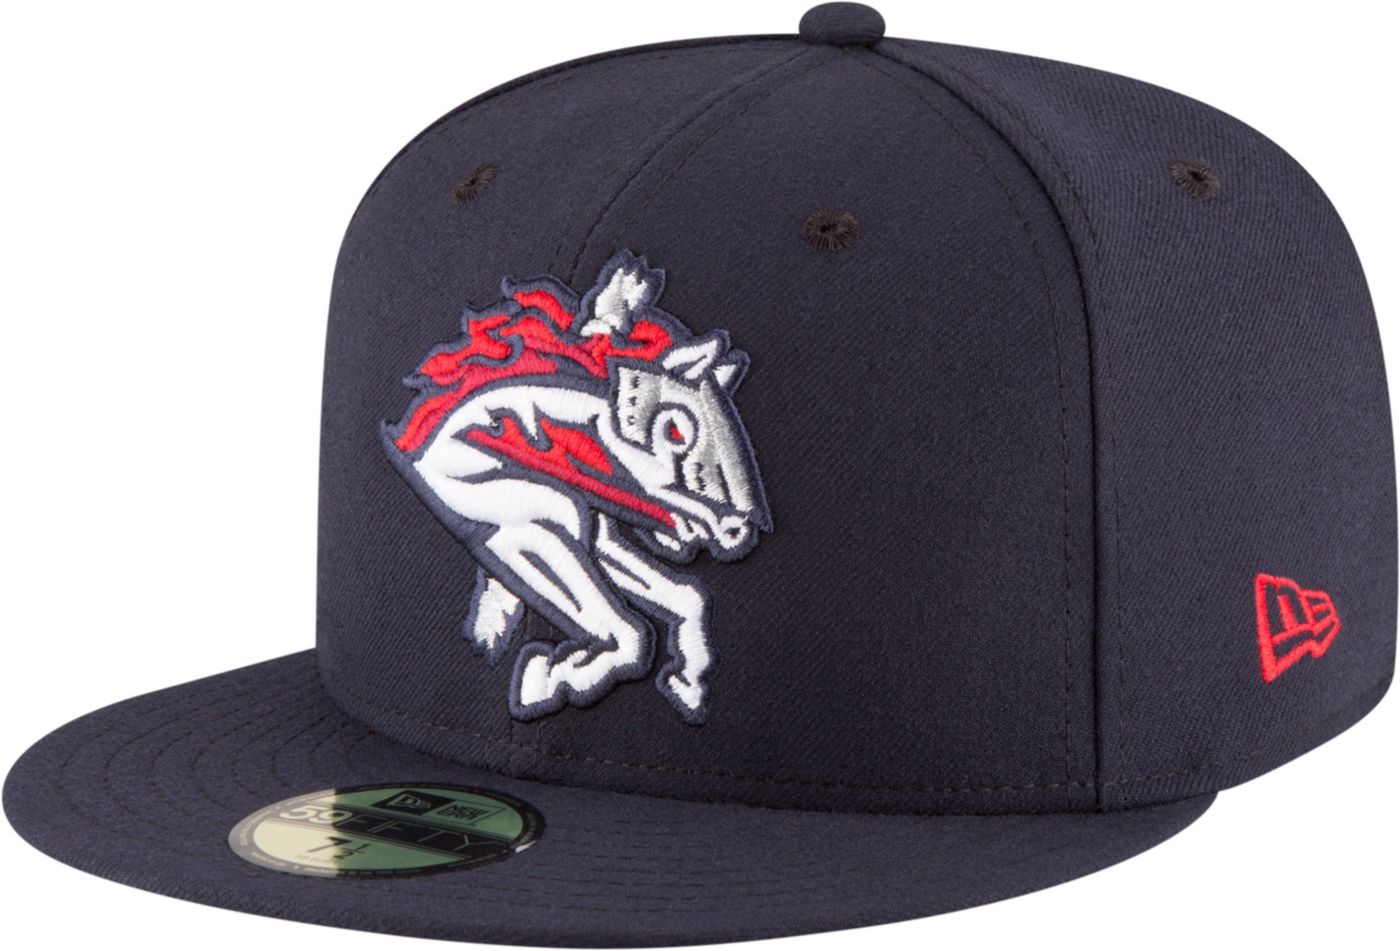 New Era Men's Binghamton Rumble Ponies 59Fifty Navy Authentic Hat